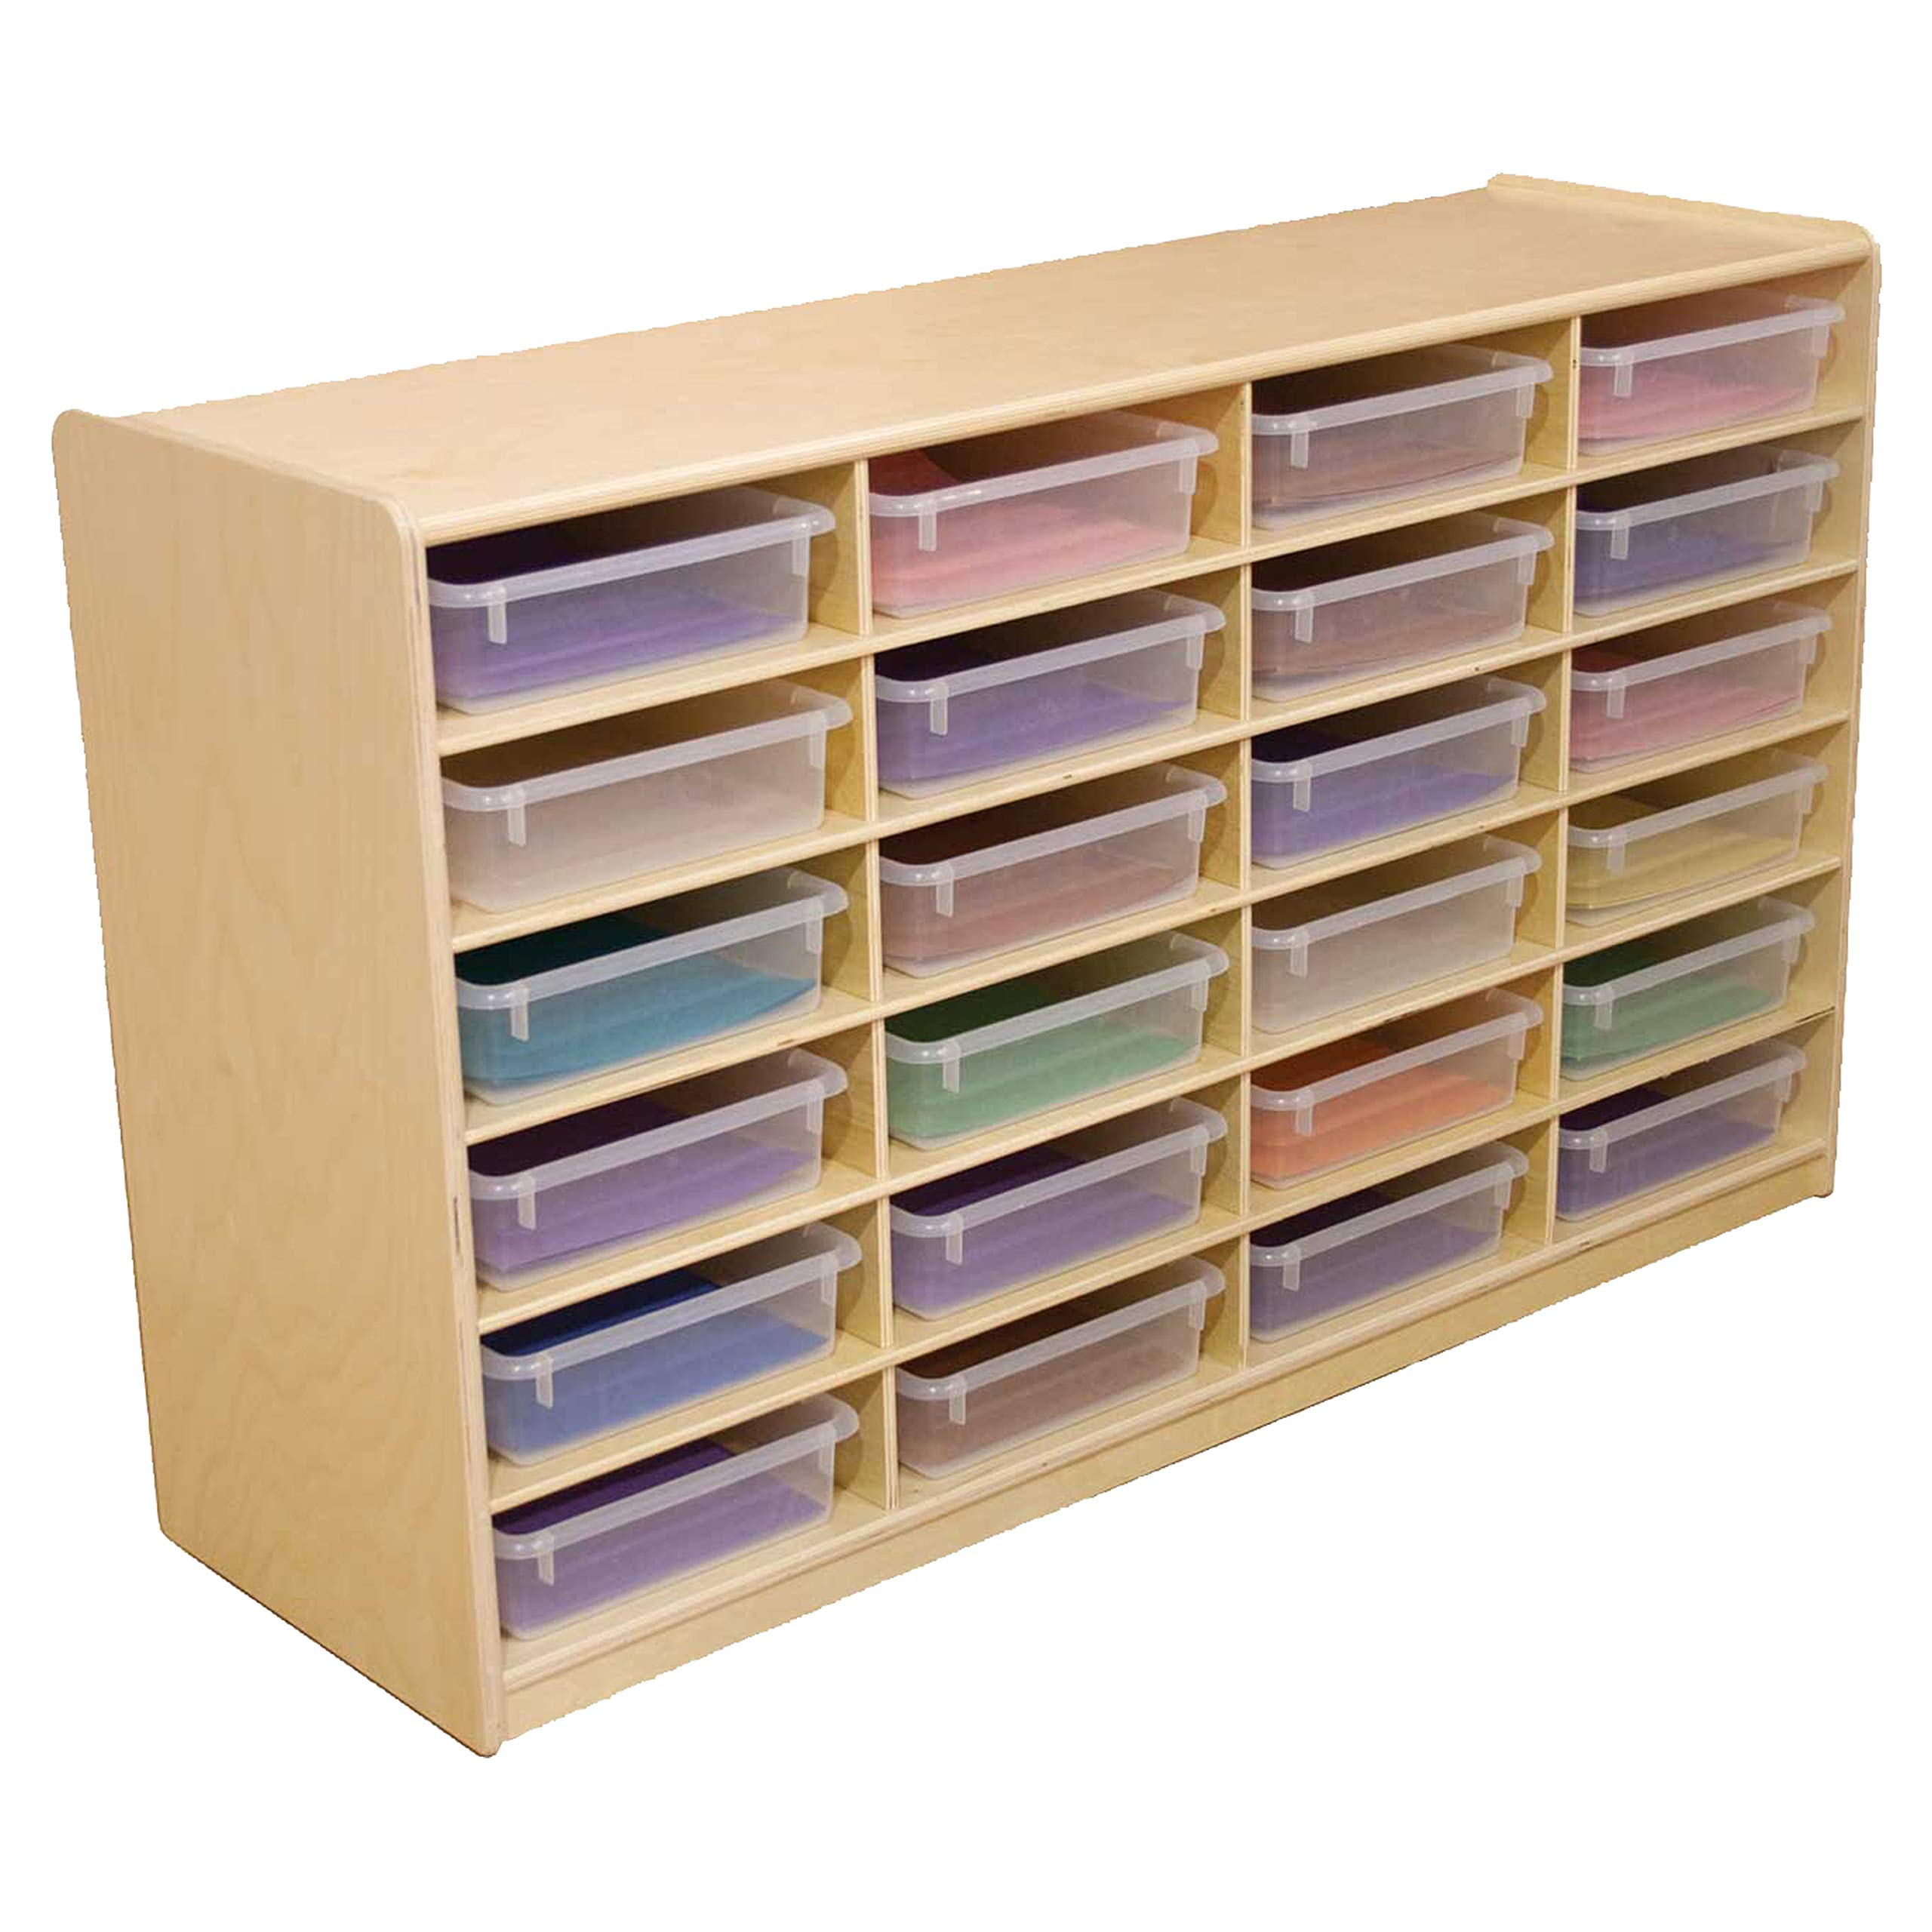 Wood Designs (24) 3'' Letter Tray Storage Unit with Translucent Trays by Wood Designs